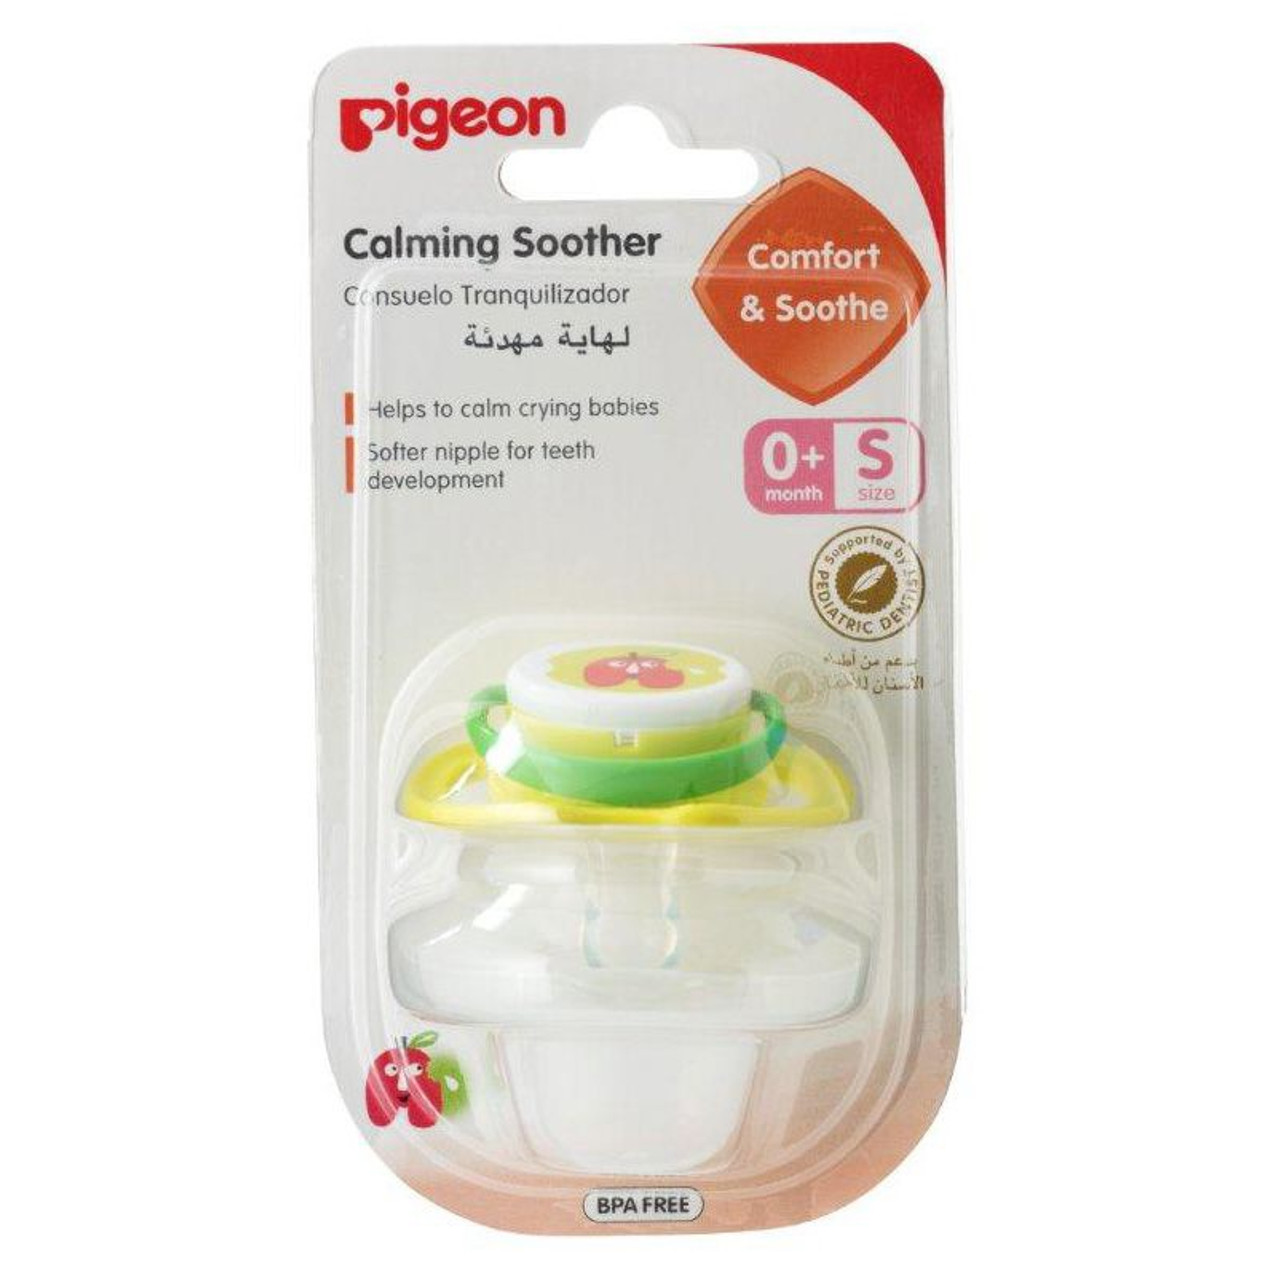 Pigeon Calming Soothers (S Size) 0-3 Months 1pk at Baby Barn Discounts Piegon's new range of soothers will calm any bub, with a scientifically designed teat shape that has been re-engineered to perfectly fit a baby's mouth